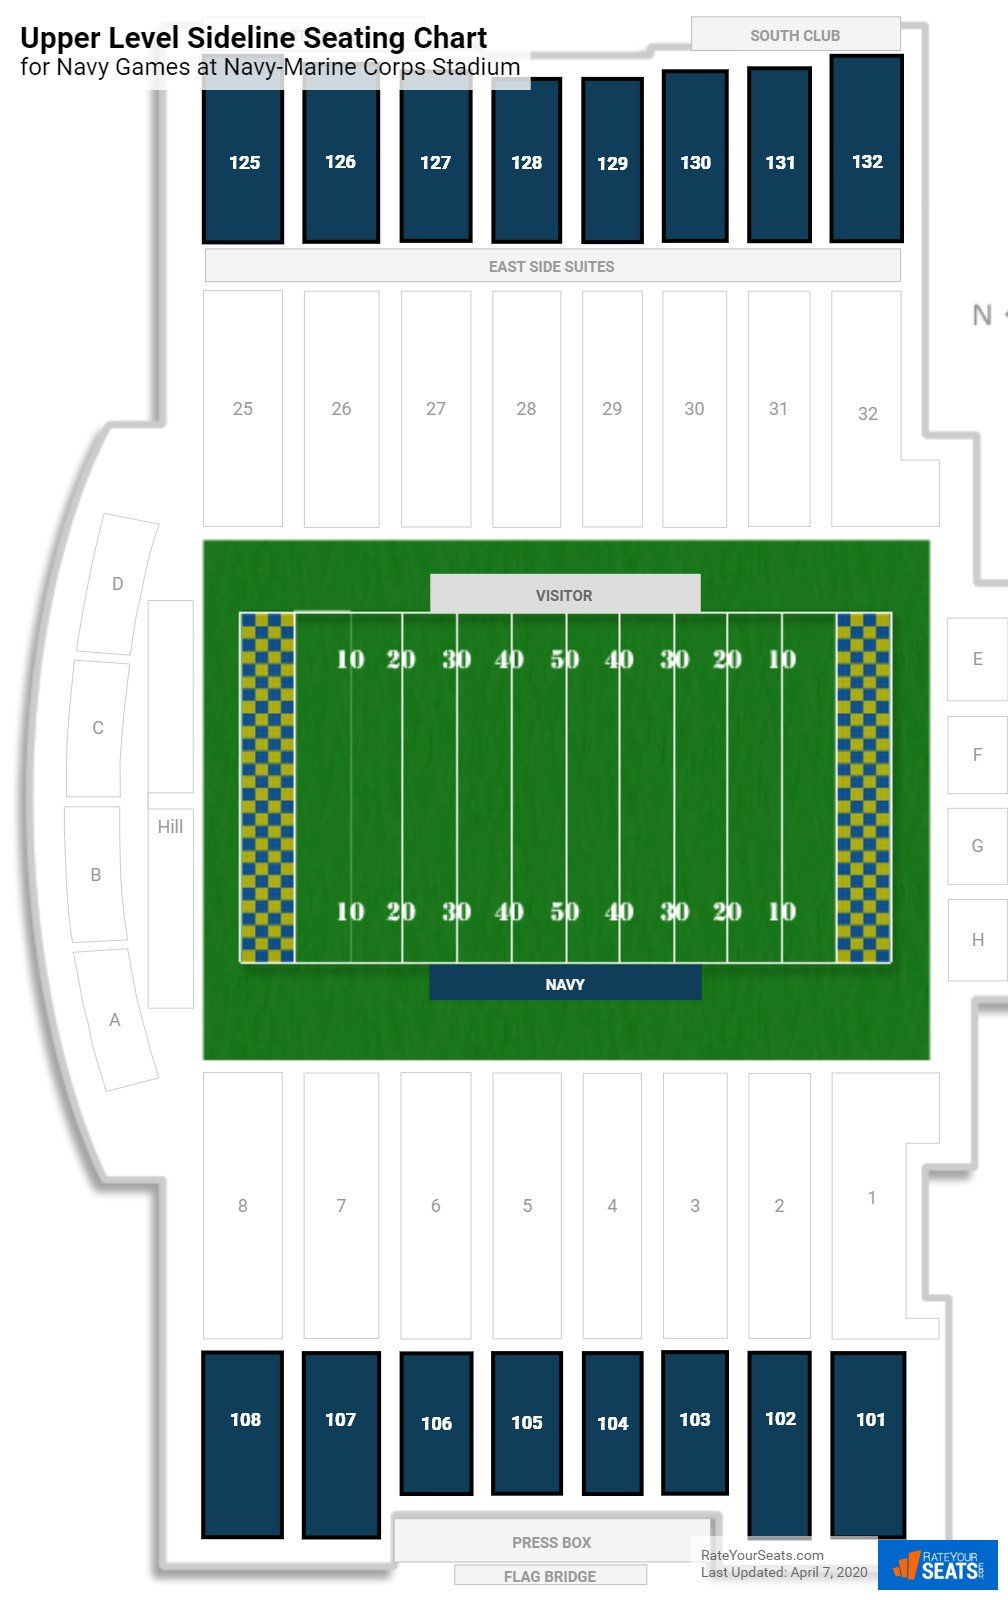 Navy-Marine Corps Stadium Upper Level Sideline seating chart